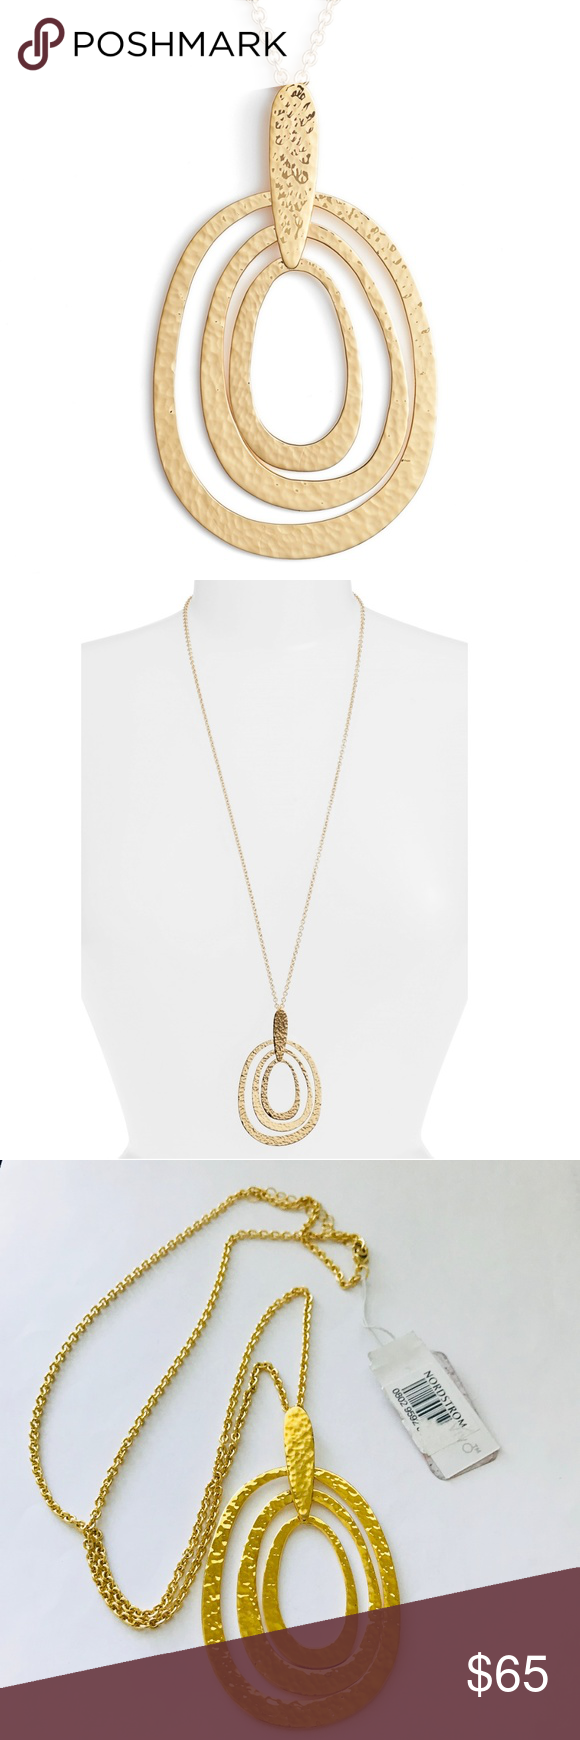 Argento vivo k gold plated long pendant necklace oval pendant